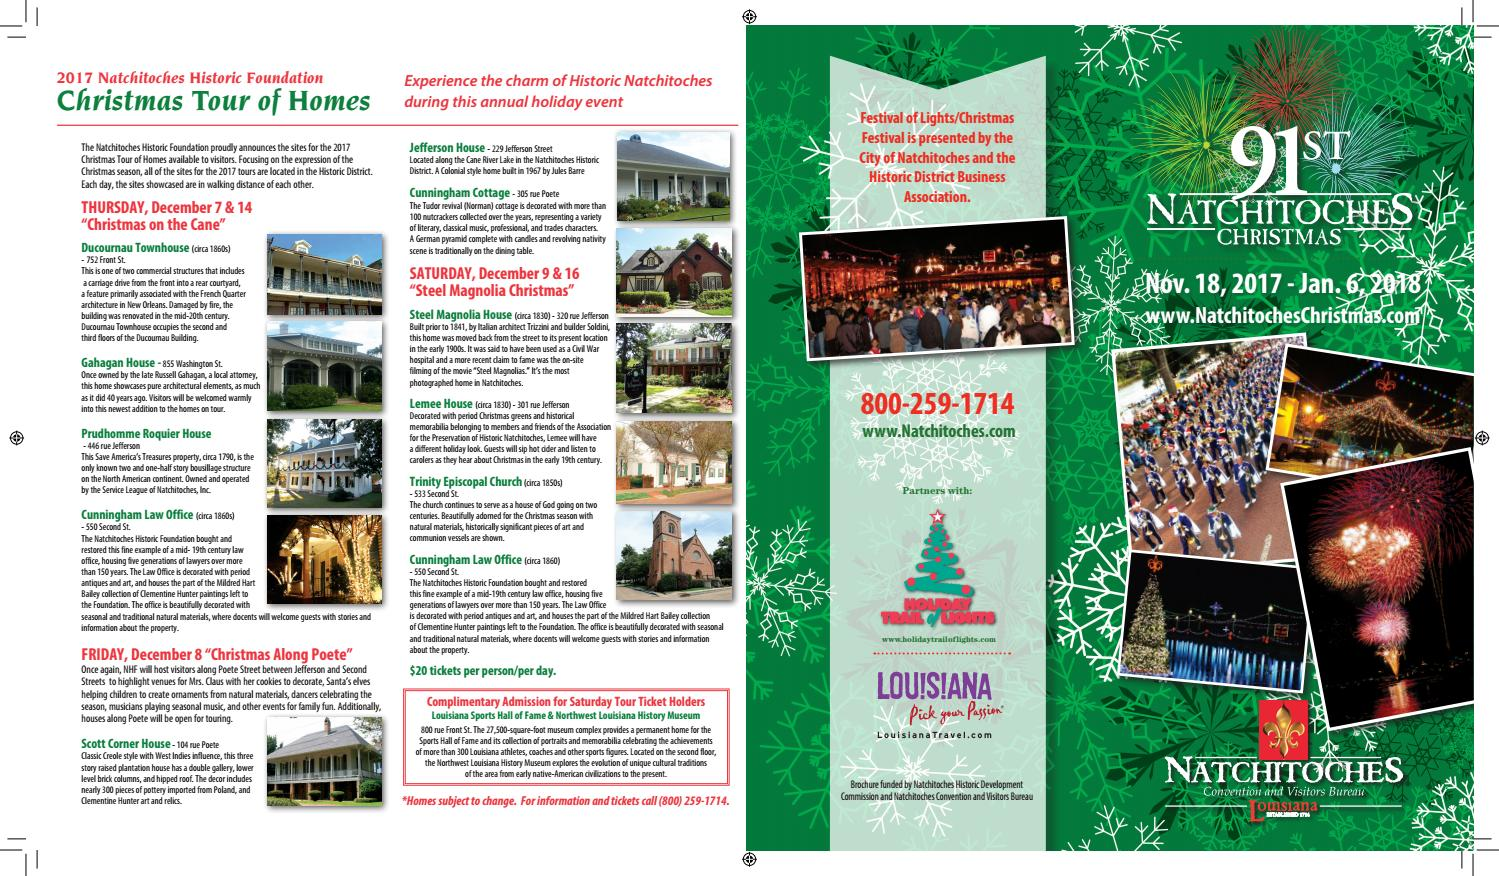 Natchitoches Christmas Brochure 2017 by Natchitoches Tourism - issuu